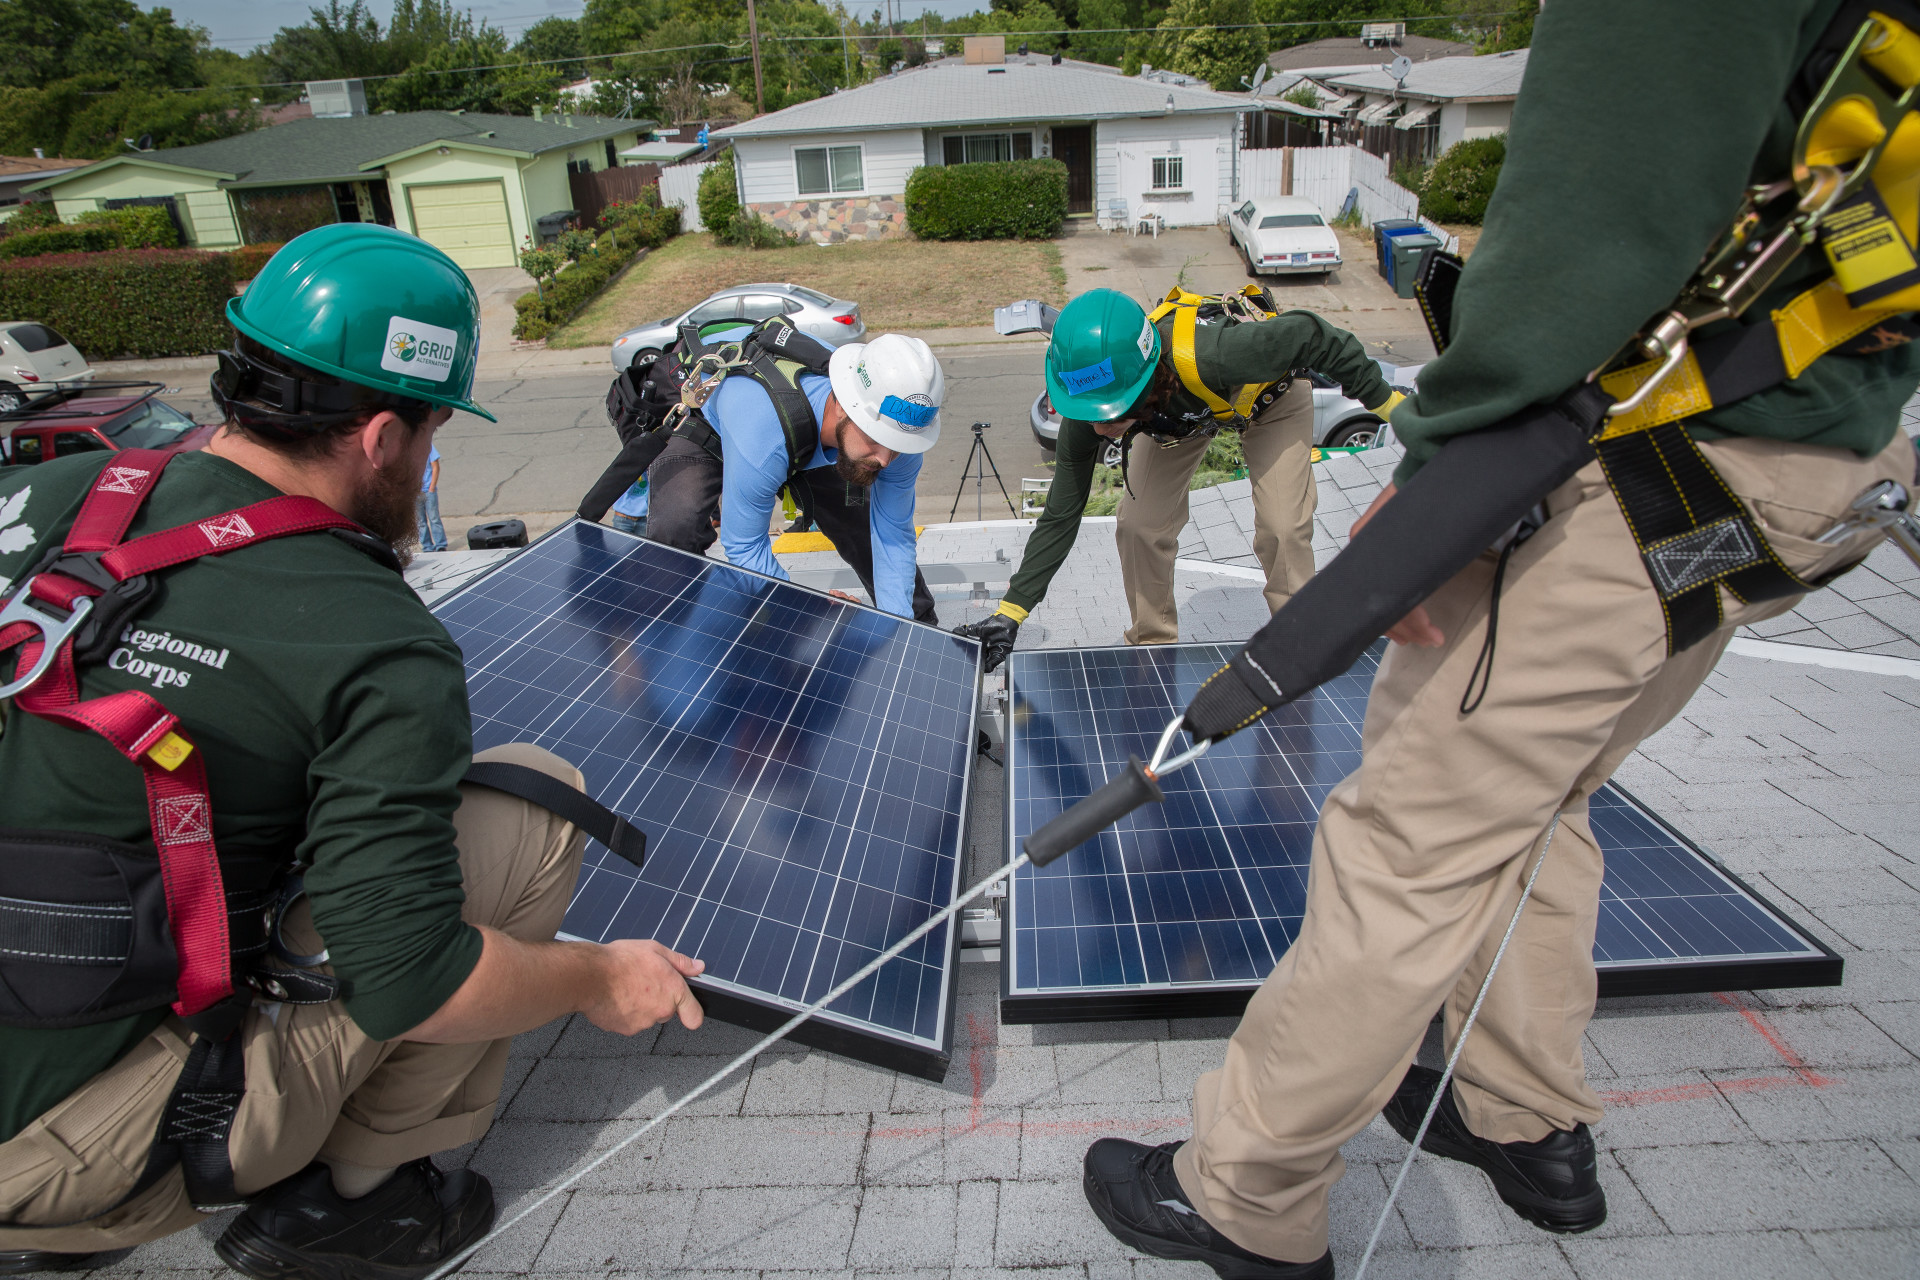 California Senate leader Kevin de León addresses the media Monday, May 18, 2015 during the installation of solar panels on the roor of a South Sacramento home.